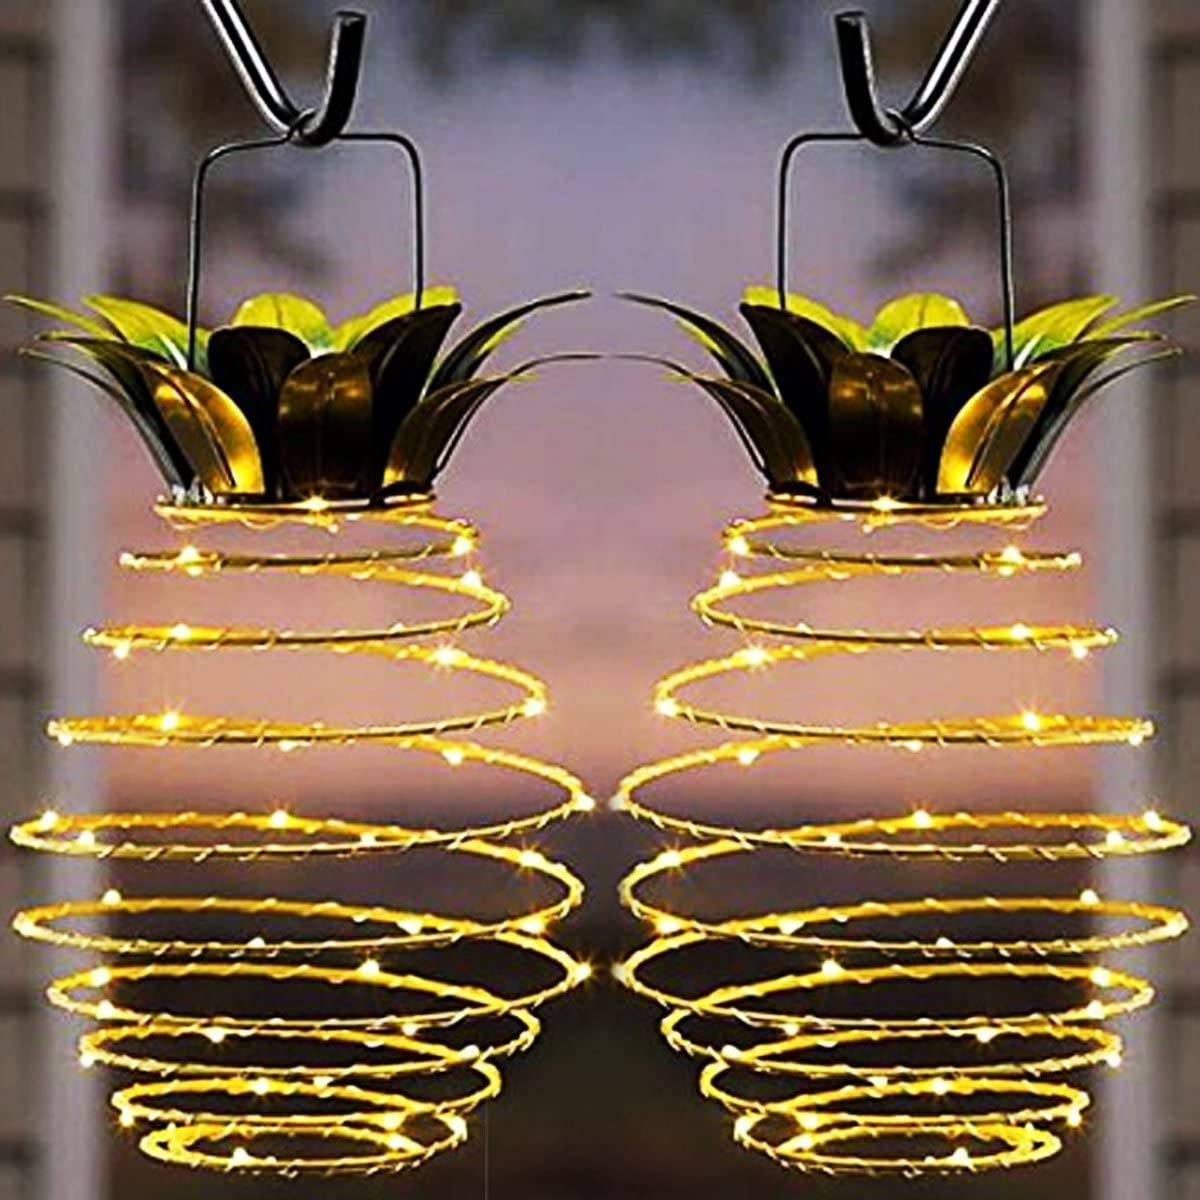 Garden Solar Lights, Outdoor Decor Pineapple Solar Path Lights Hanging Fairy Lights, 2-Pack Waterproof 25 Solar Led Warm Fairy String for Patio Path Home Décor Lighting